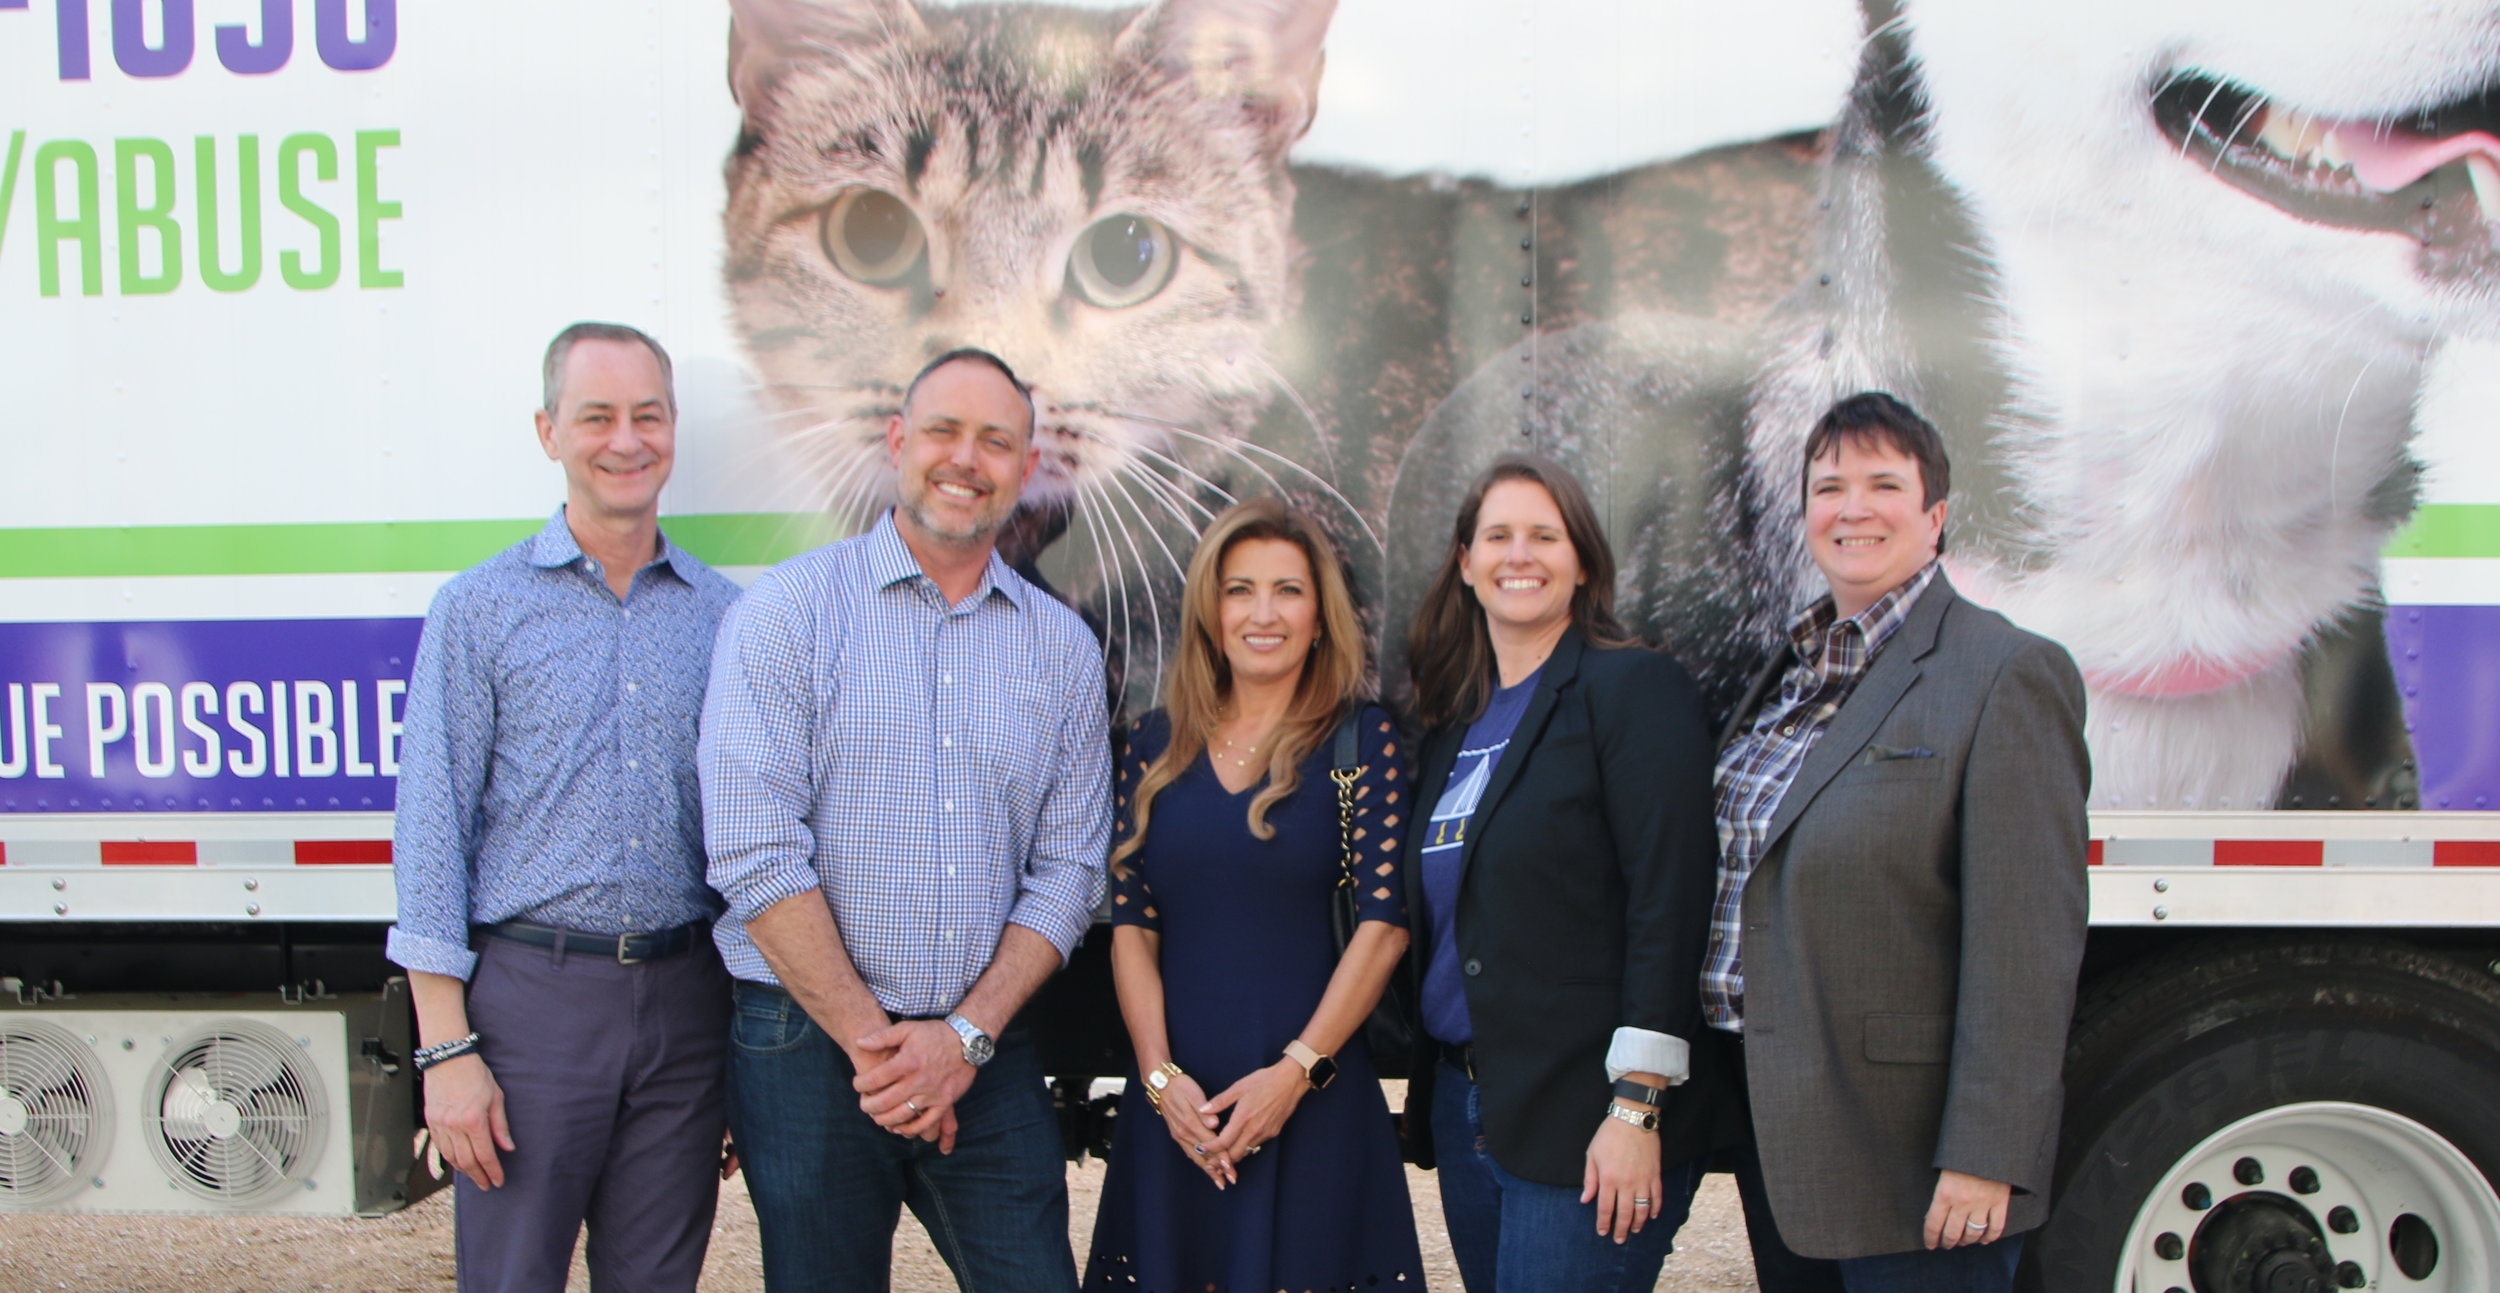 Left to right:  Steve Atkinson, Brian Walker, County Commissioner Elba Garcia, Betsy Orton, Sharon Fancher at the unveiling of the SPCA Mobile Rescue Unit funded by the Gay and Lesbian Fund for Dallas.